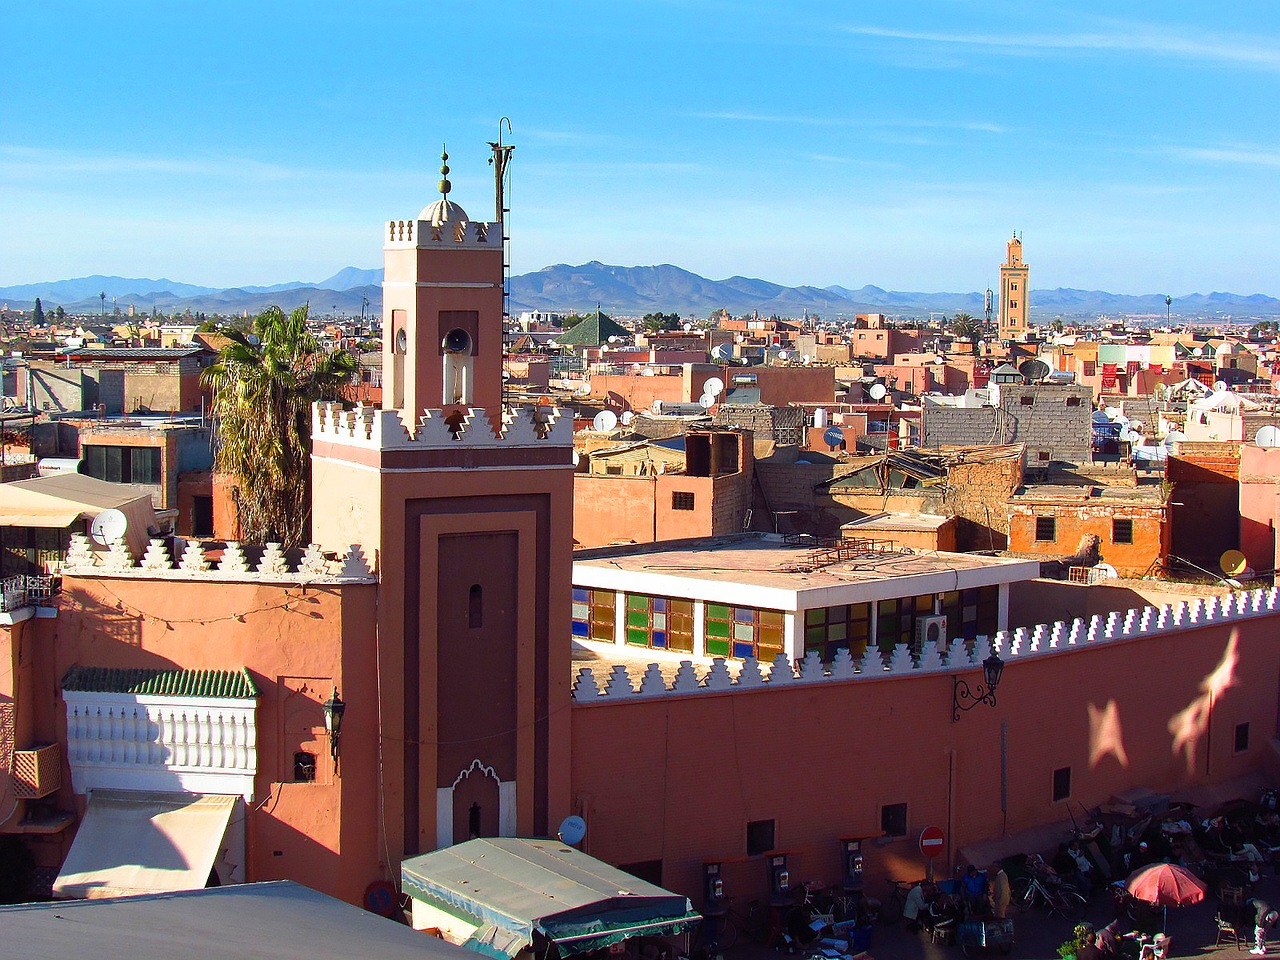 4 Sterne Hotel in Marrakesch - Halbpension